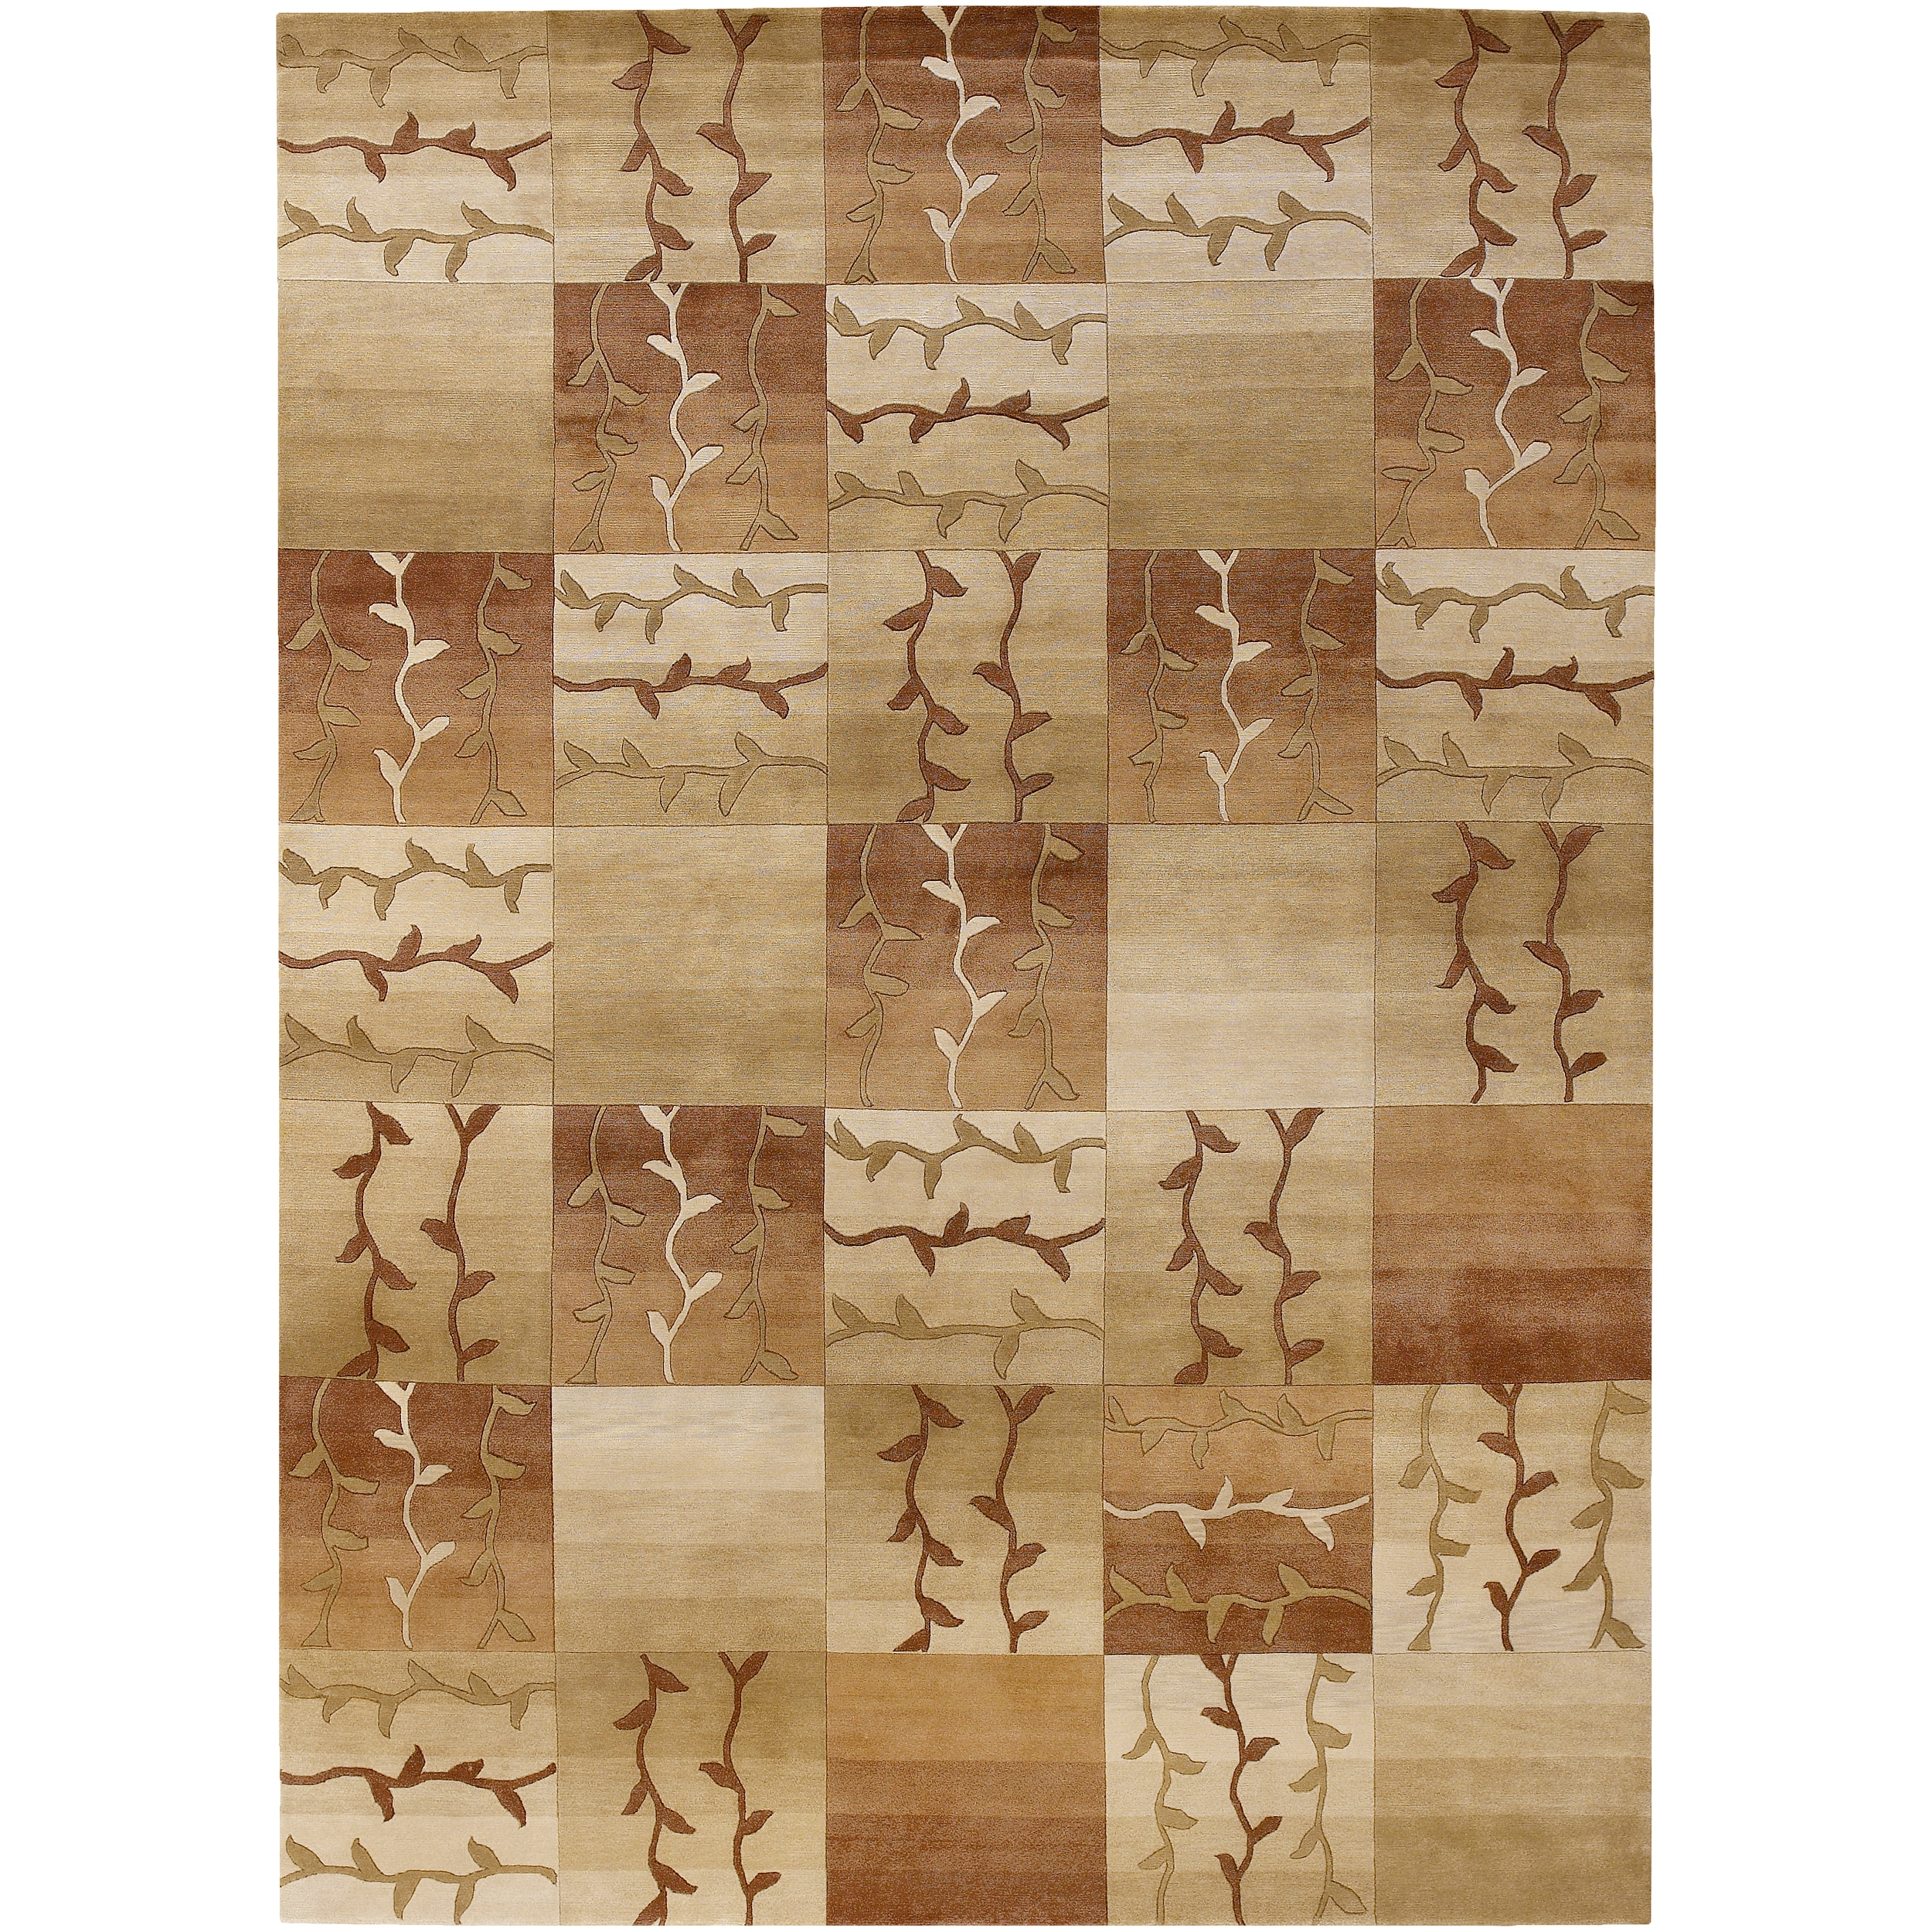 Hand-knotted Multicolored La Crosse Semi-Worsted New Zealand Wool Rug (8' x 11')